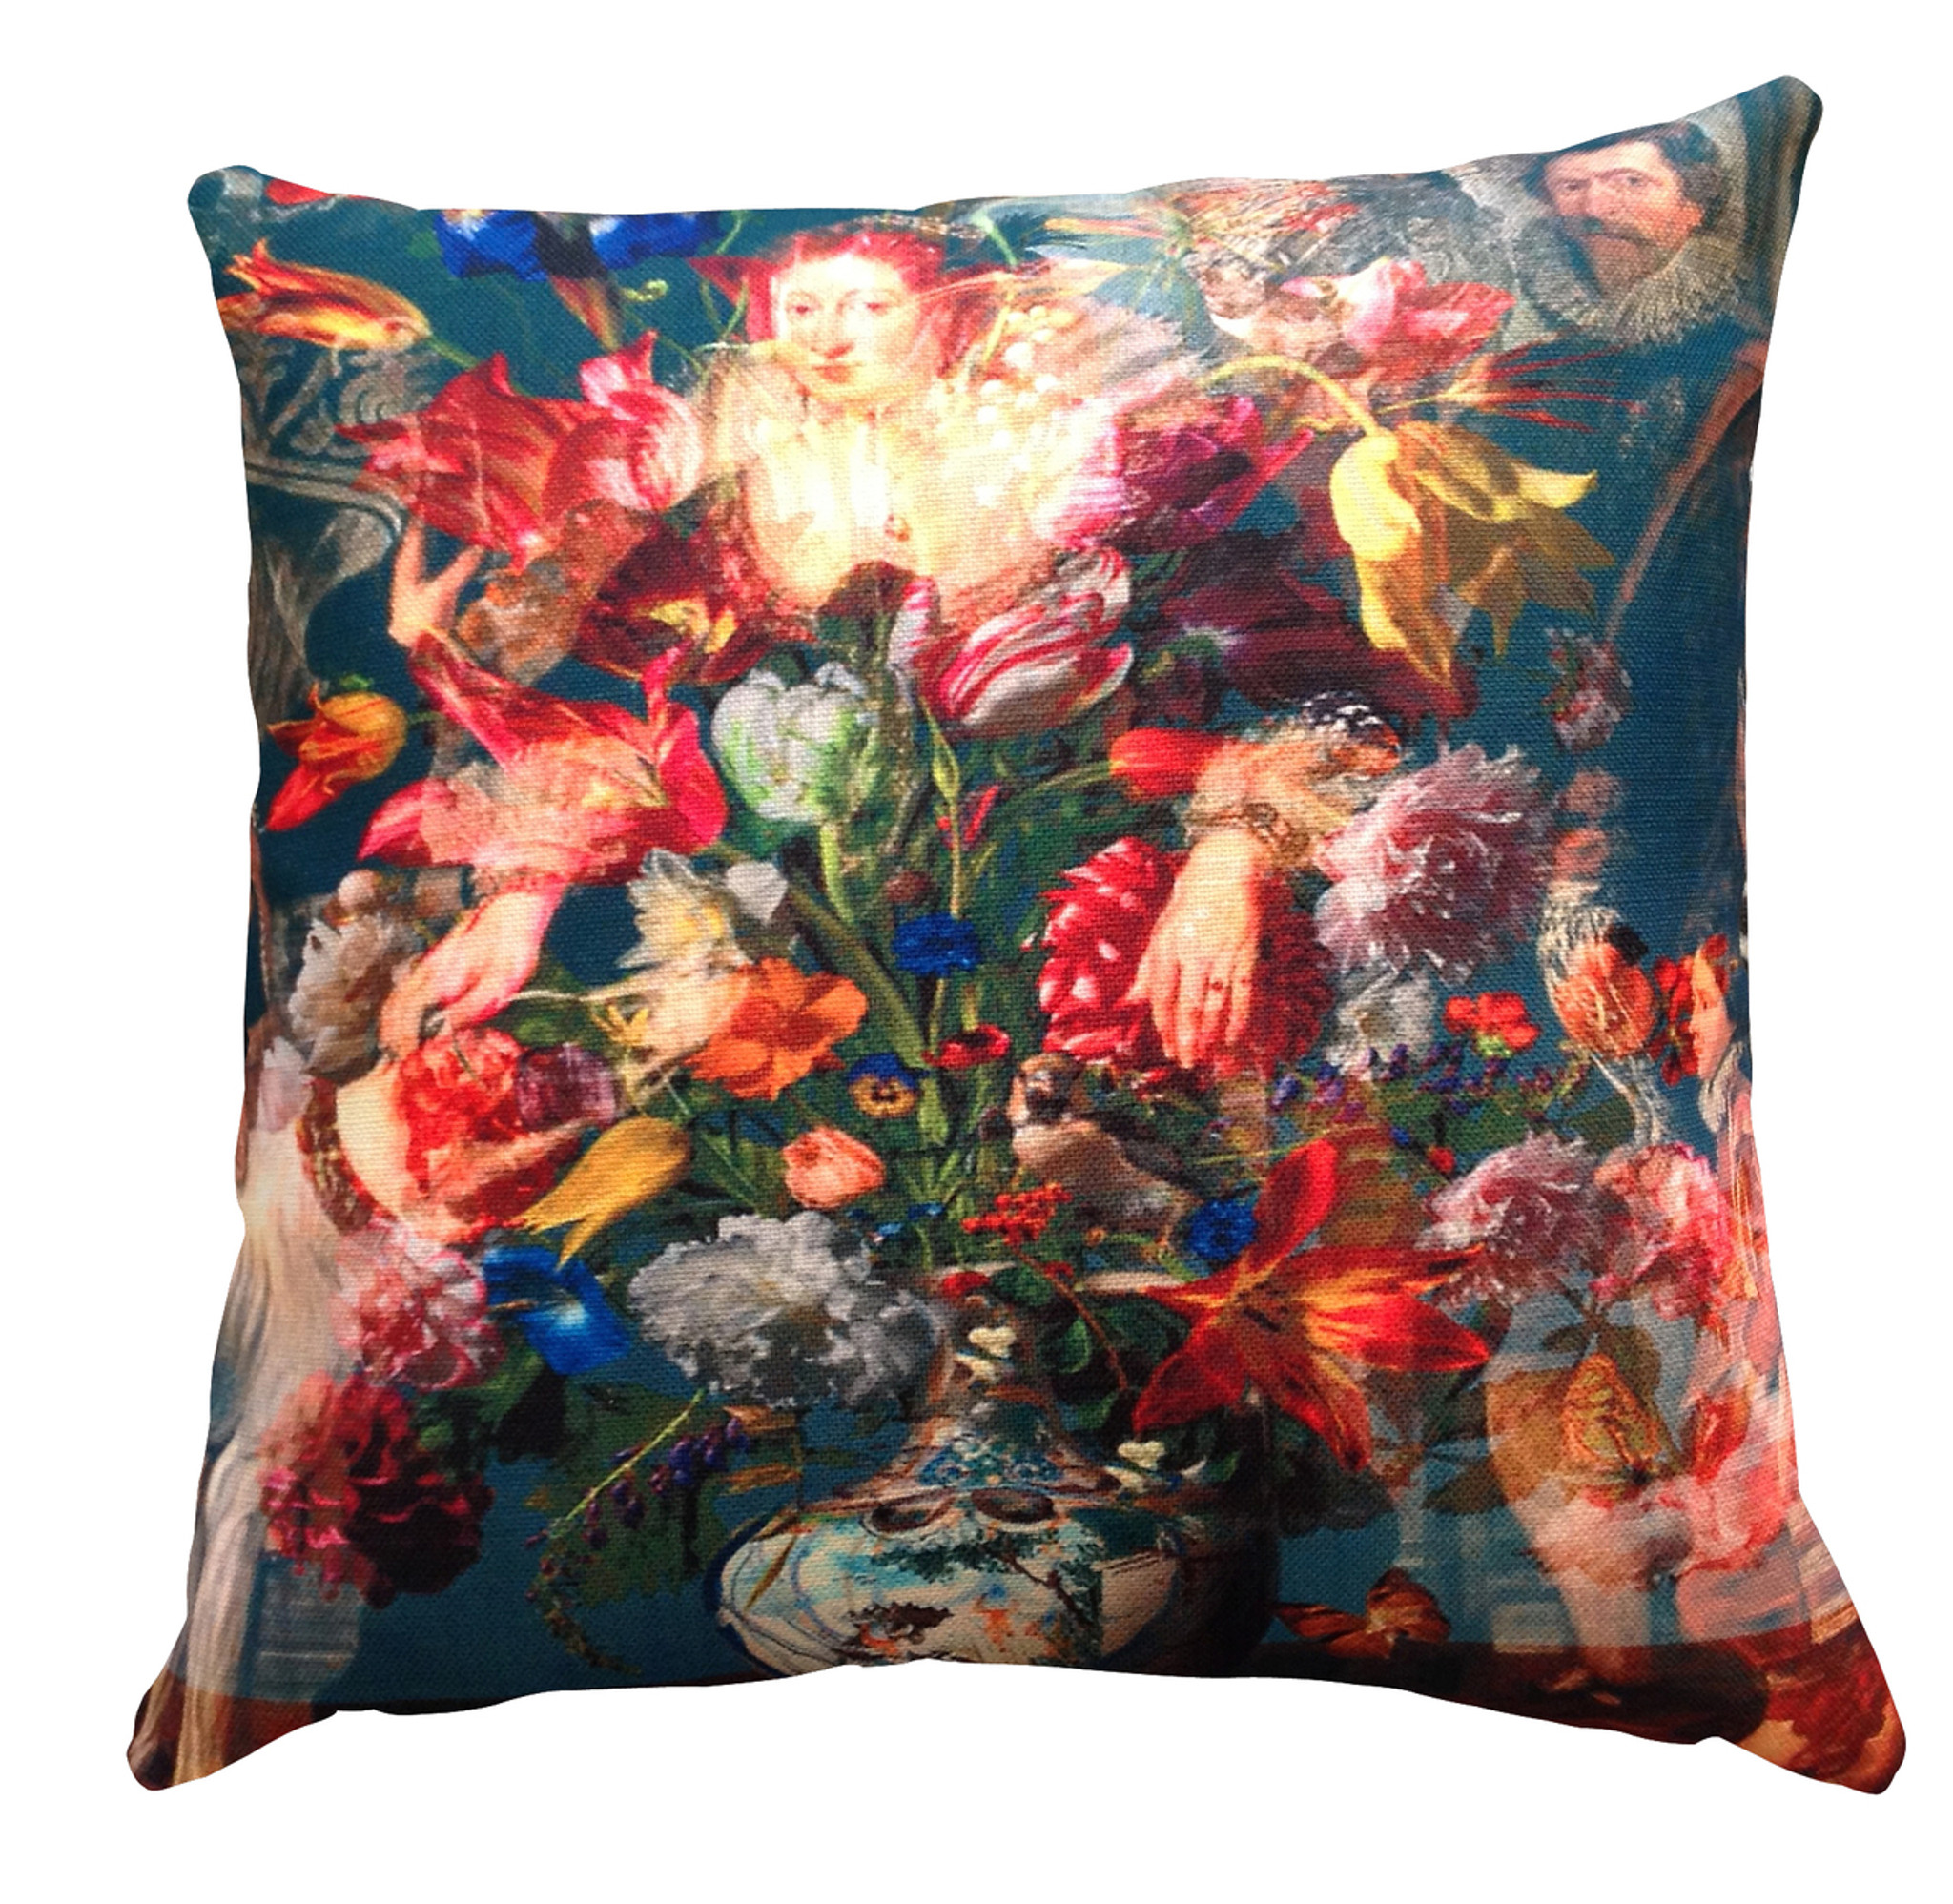 Cushion Cover - Countess with Flowers